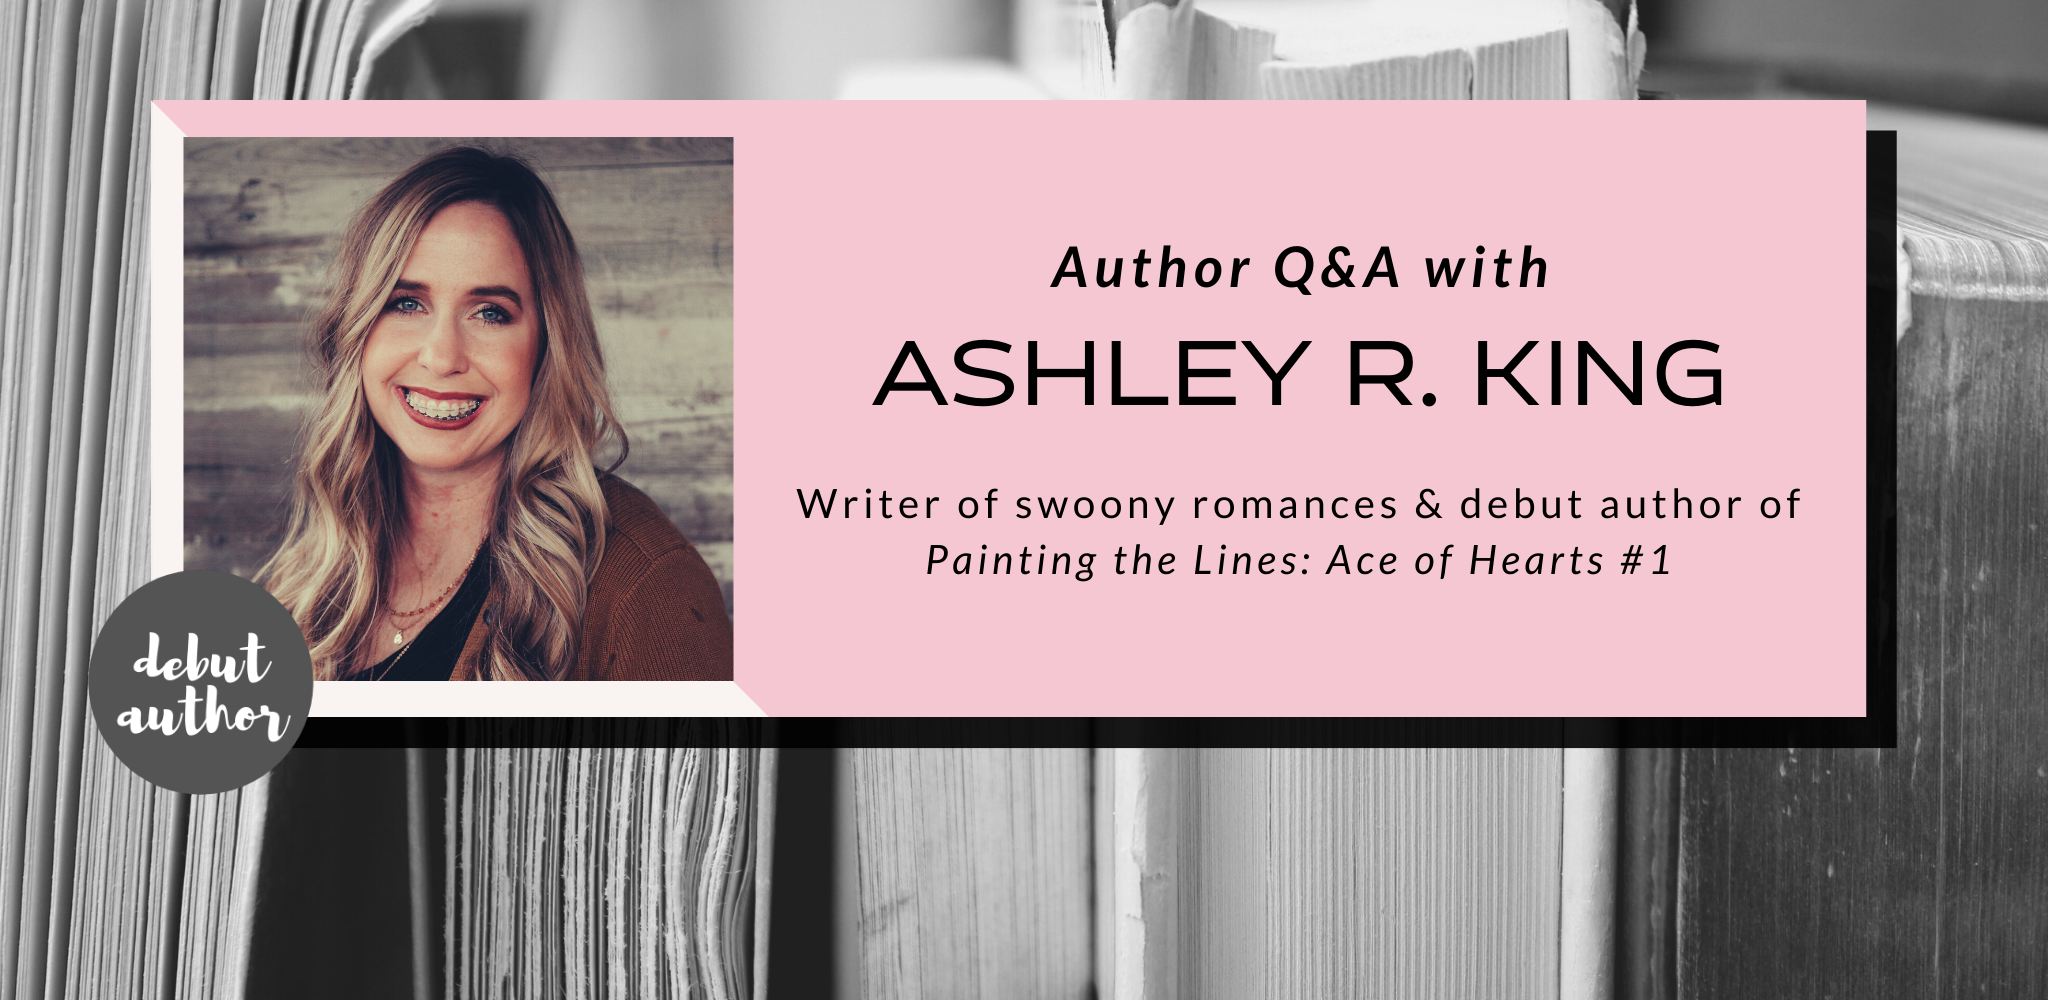 Q&A with Ashley R. King